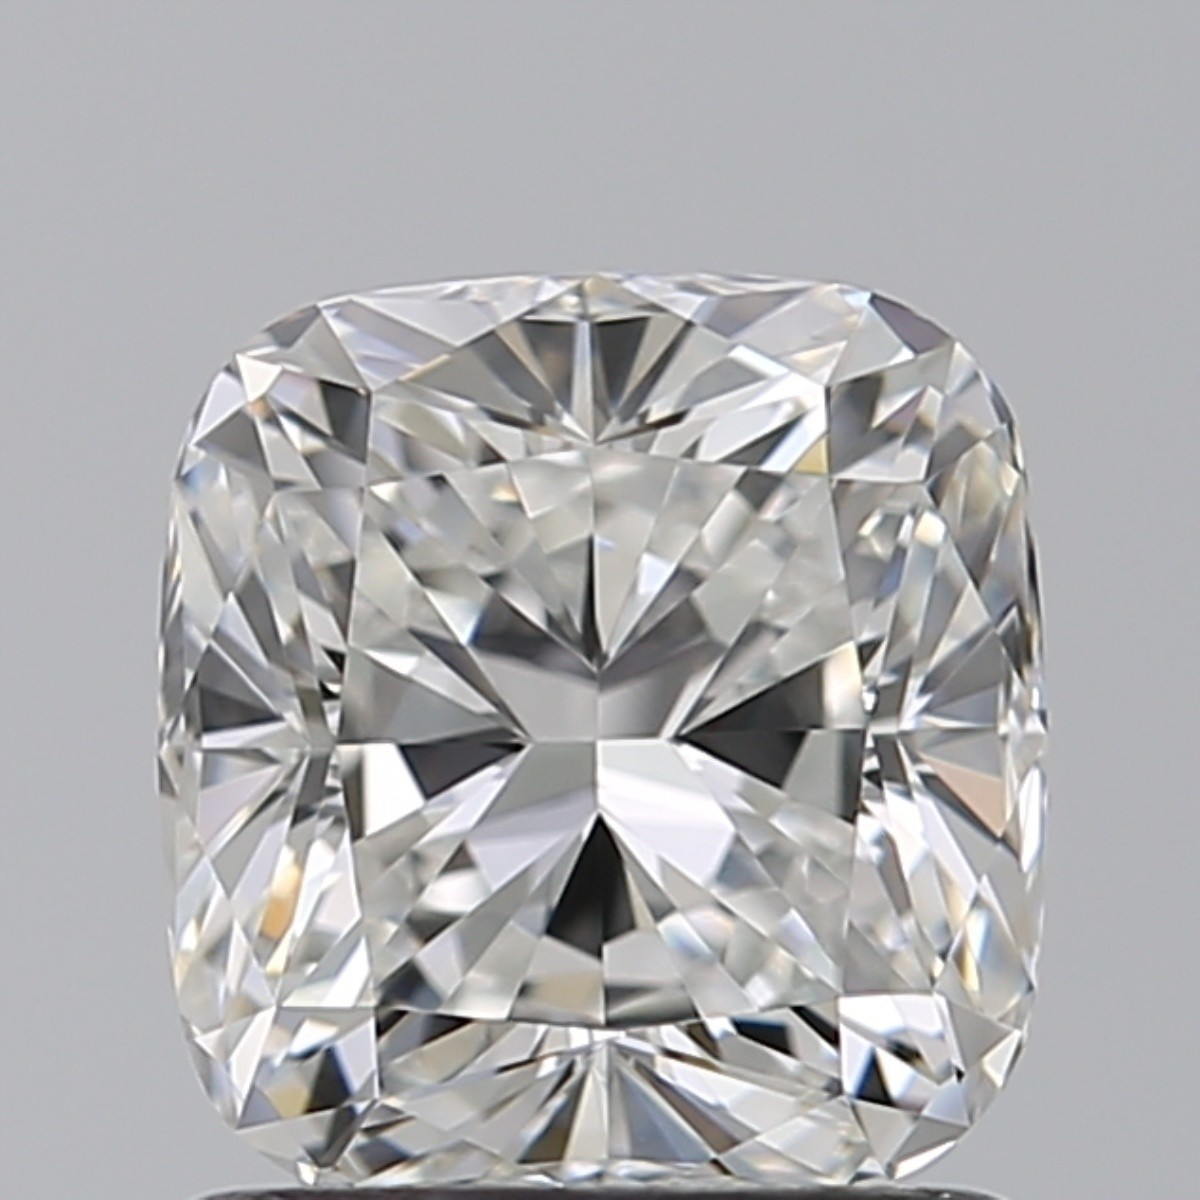 1.21 Carat Cushion Brilliant Diamond (F/VVS1)